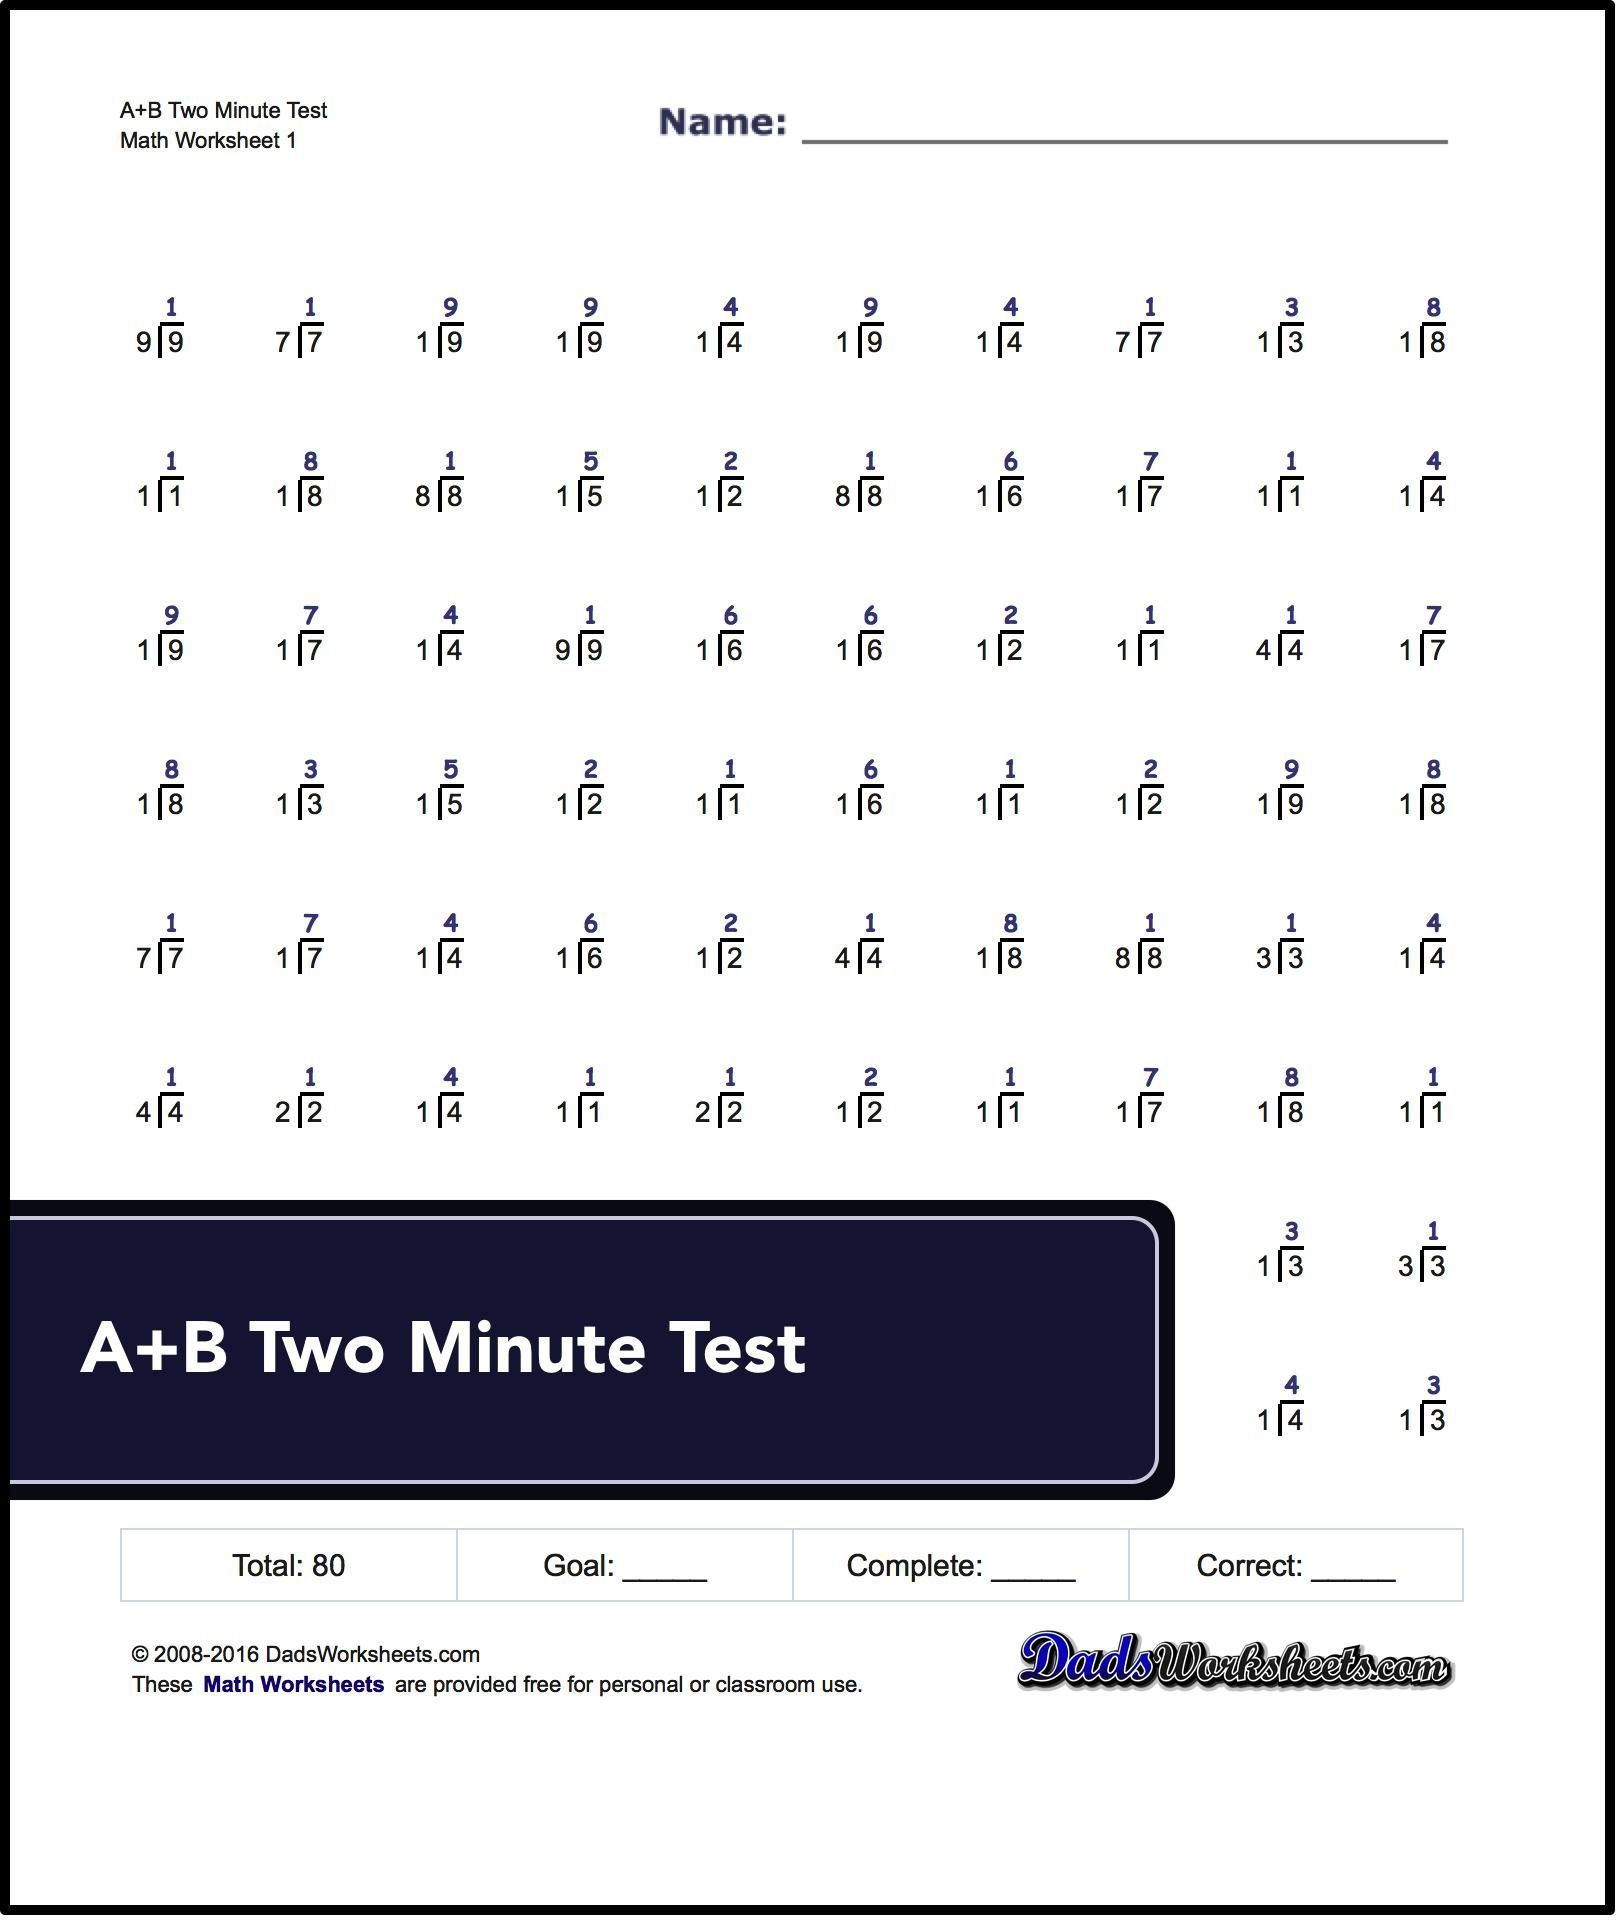 Rocket Math Division Worksheets 80 Problem Division Worksheets Similar to Rocketmath Tests